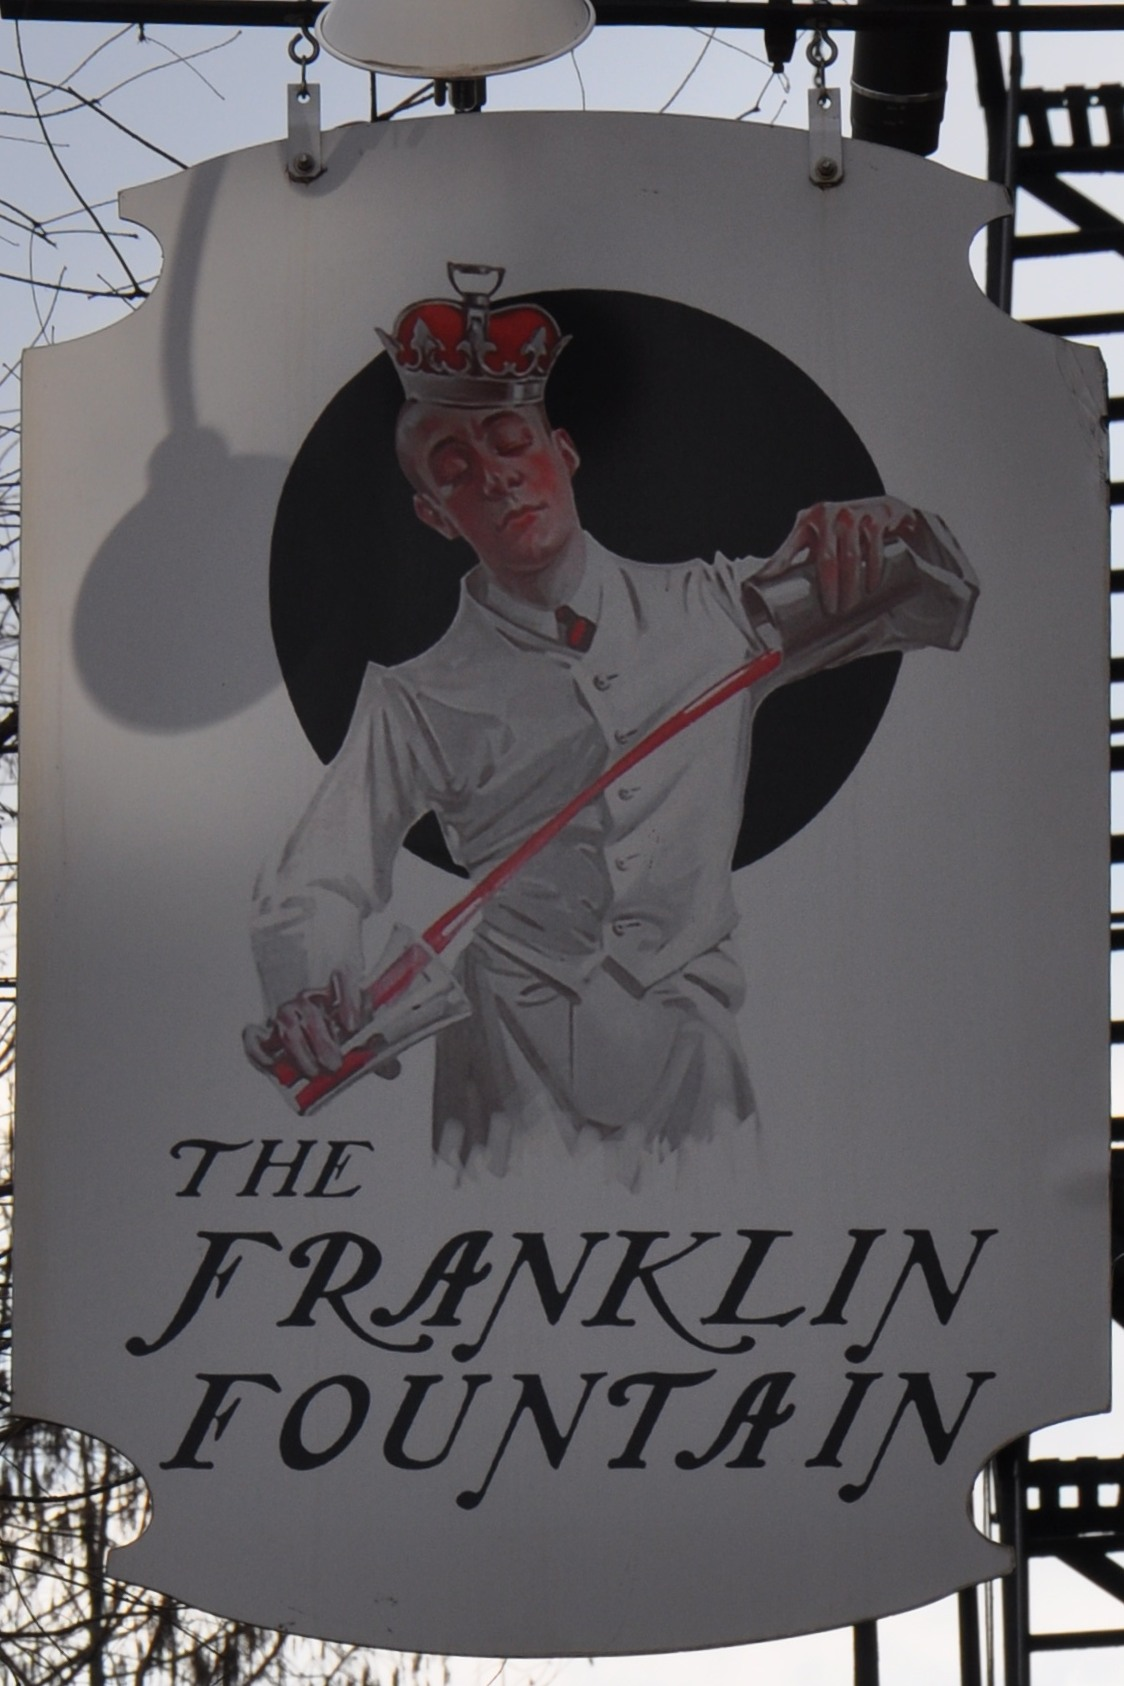 The Franklin Fountain sign, showing a man in a white uniform, mixing sodas.